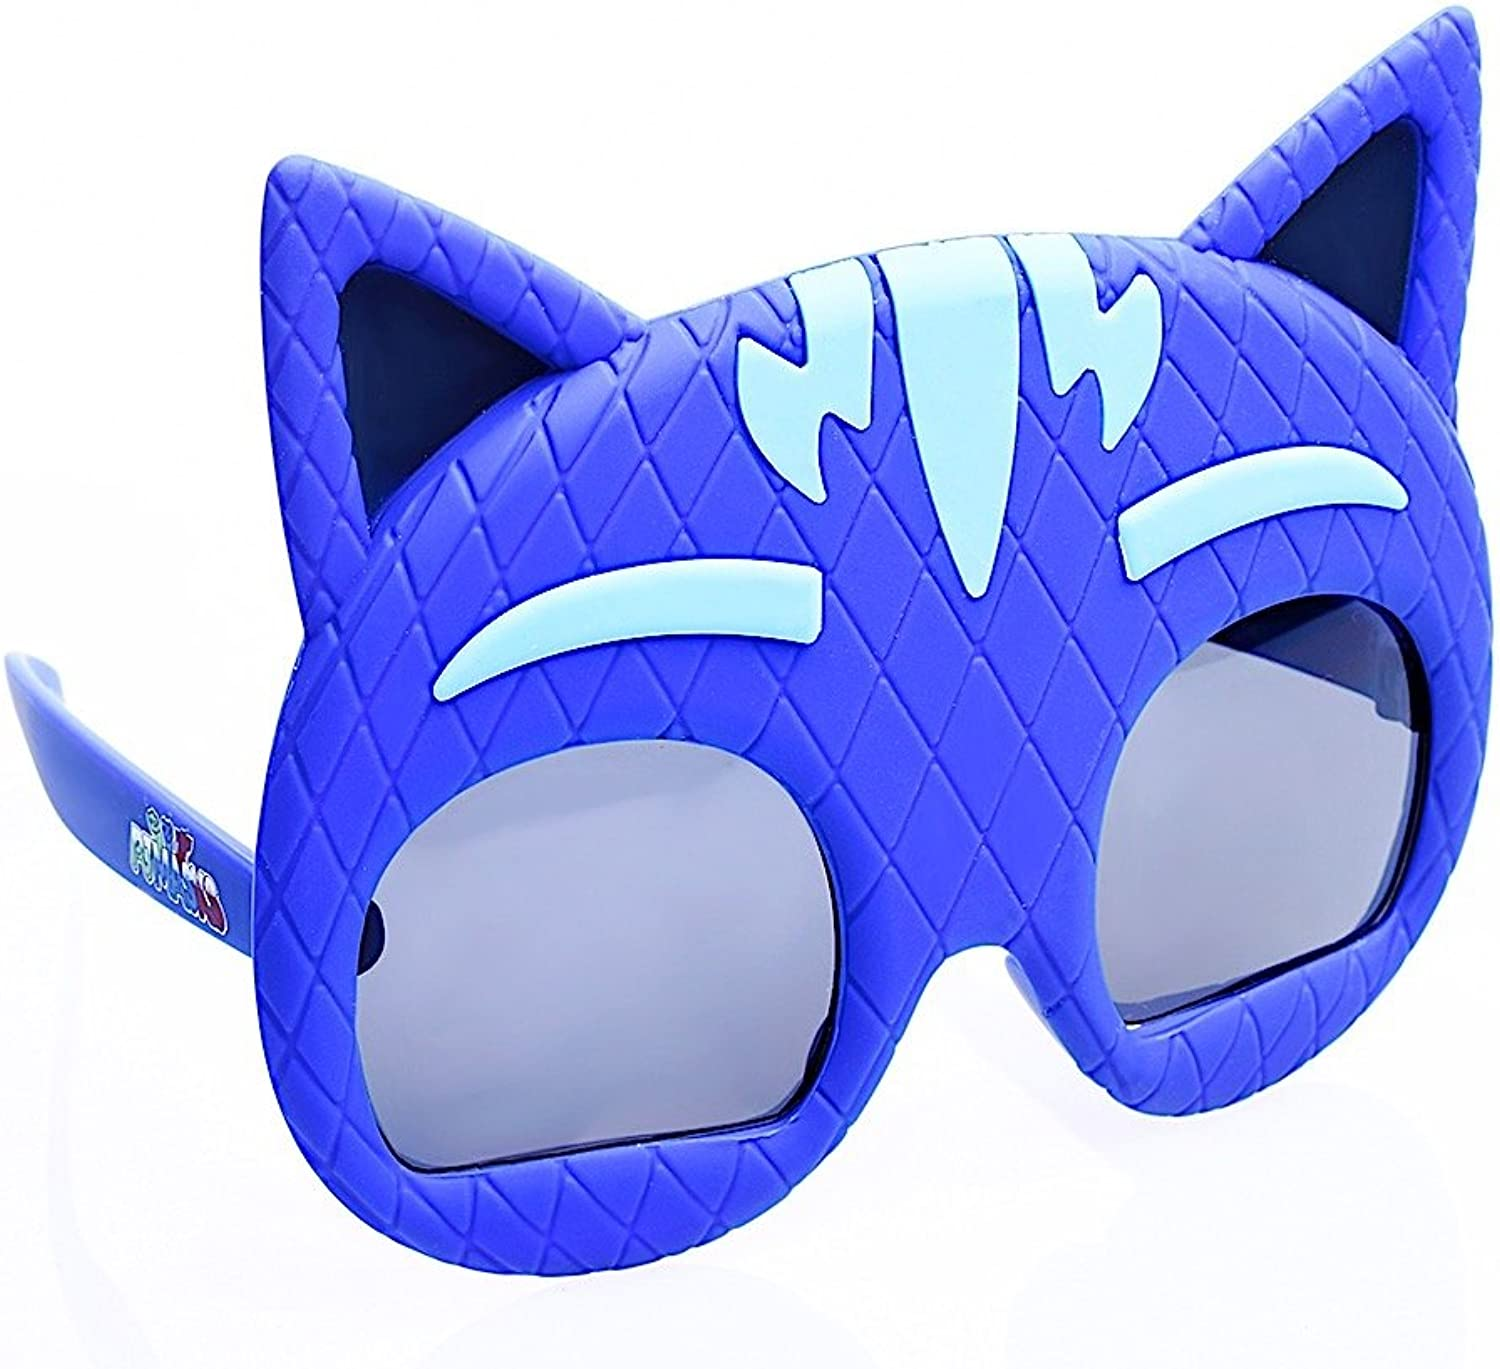 Sunstaches Lil' Characters PJ Masks Catboy Kids Character Sunglasses, Party Favors, UV400